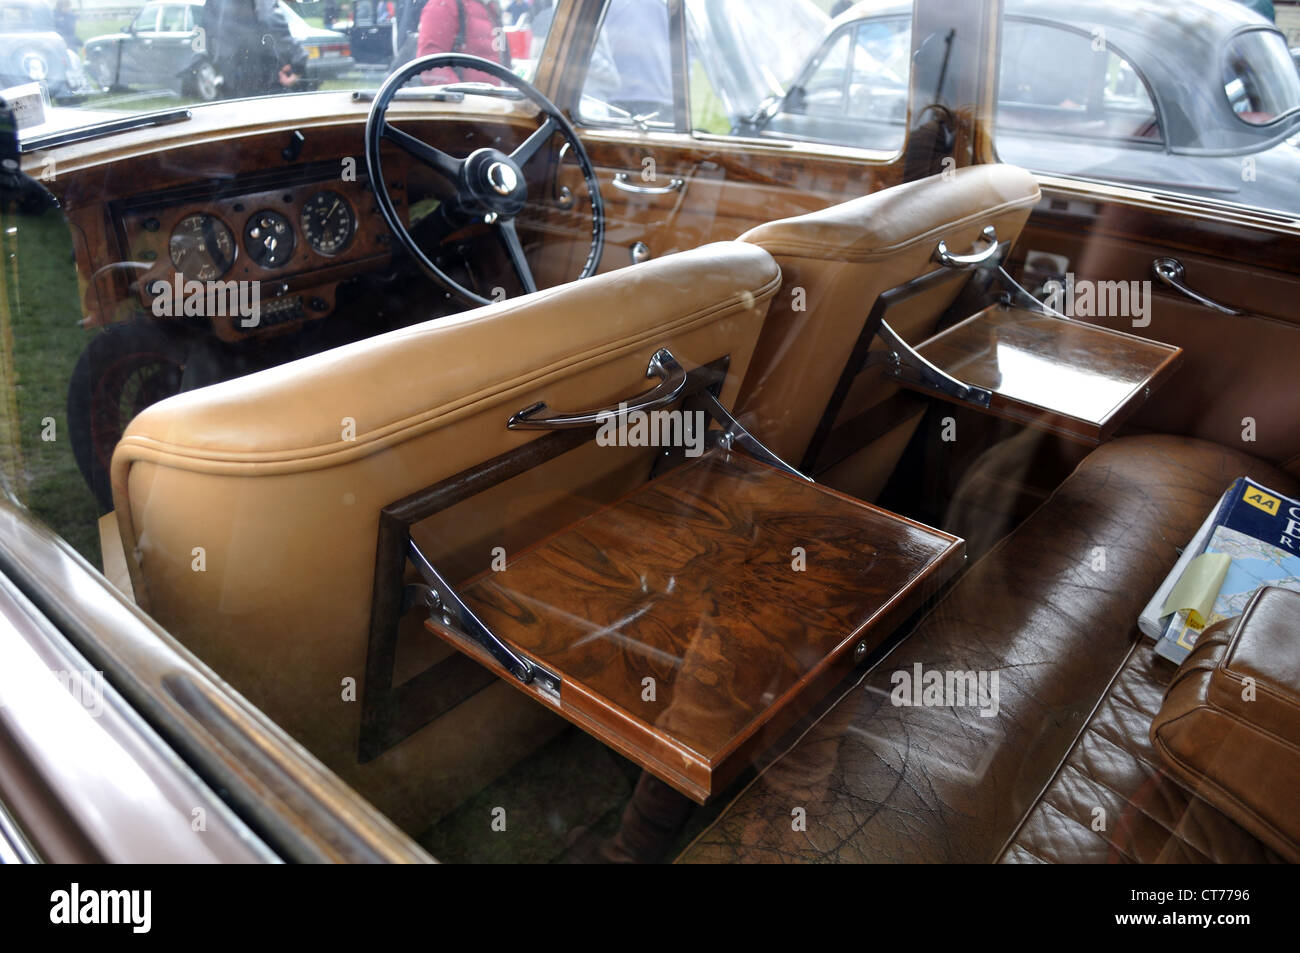 classic bentley leather interior walnut picnic tables vintage car stock photo royalty free. Black Bedroom Furniture Sets. Home Design Ideas